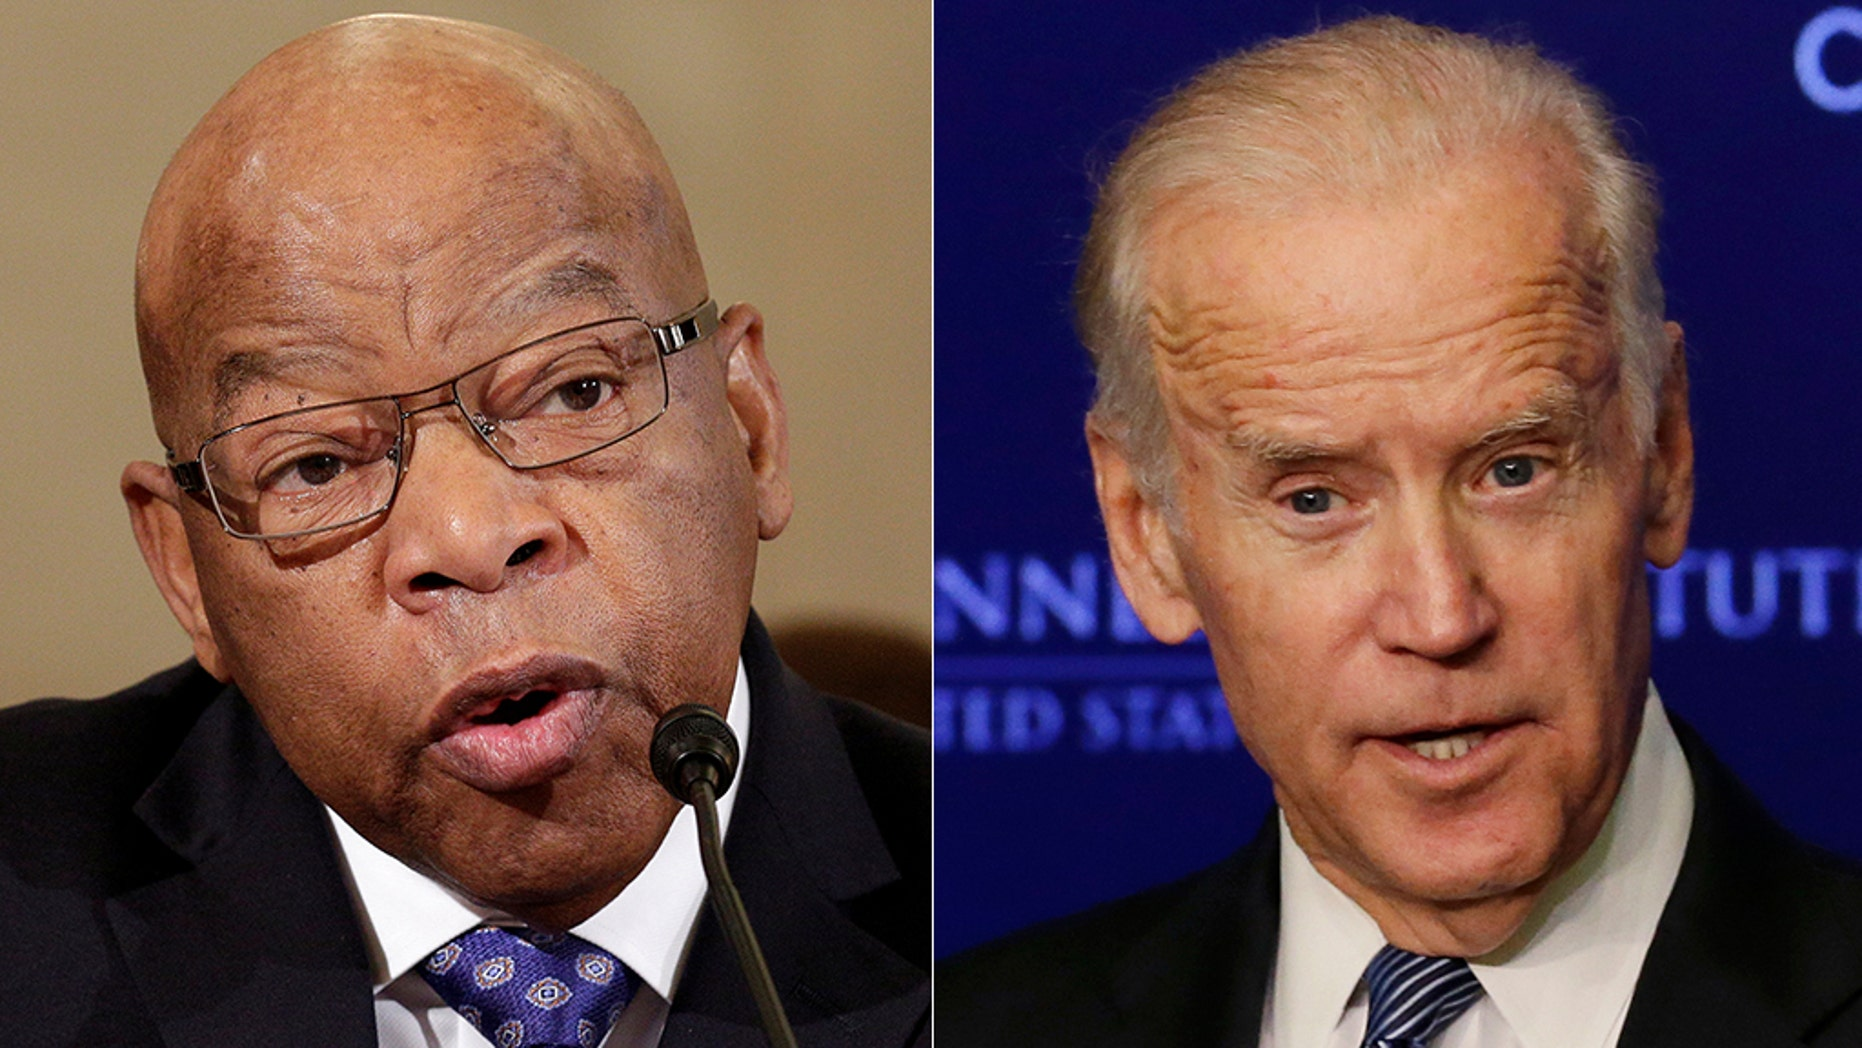 Rep. John Lewis has come to the defense of Joe Biden after the 2020 hopeful touted his past success in working alongside segregationist senators